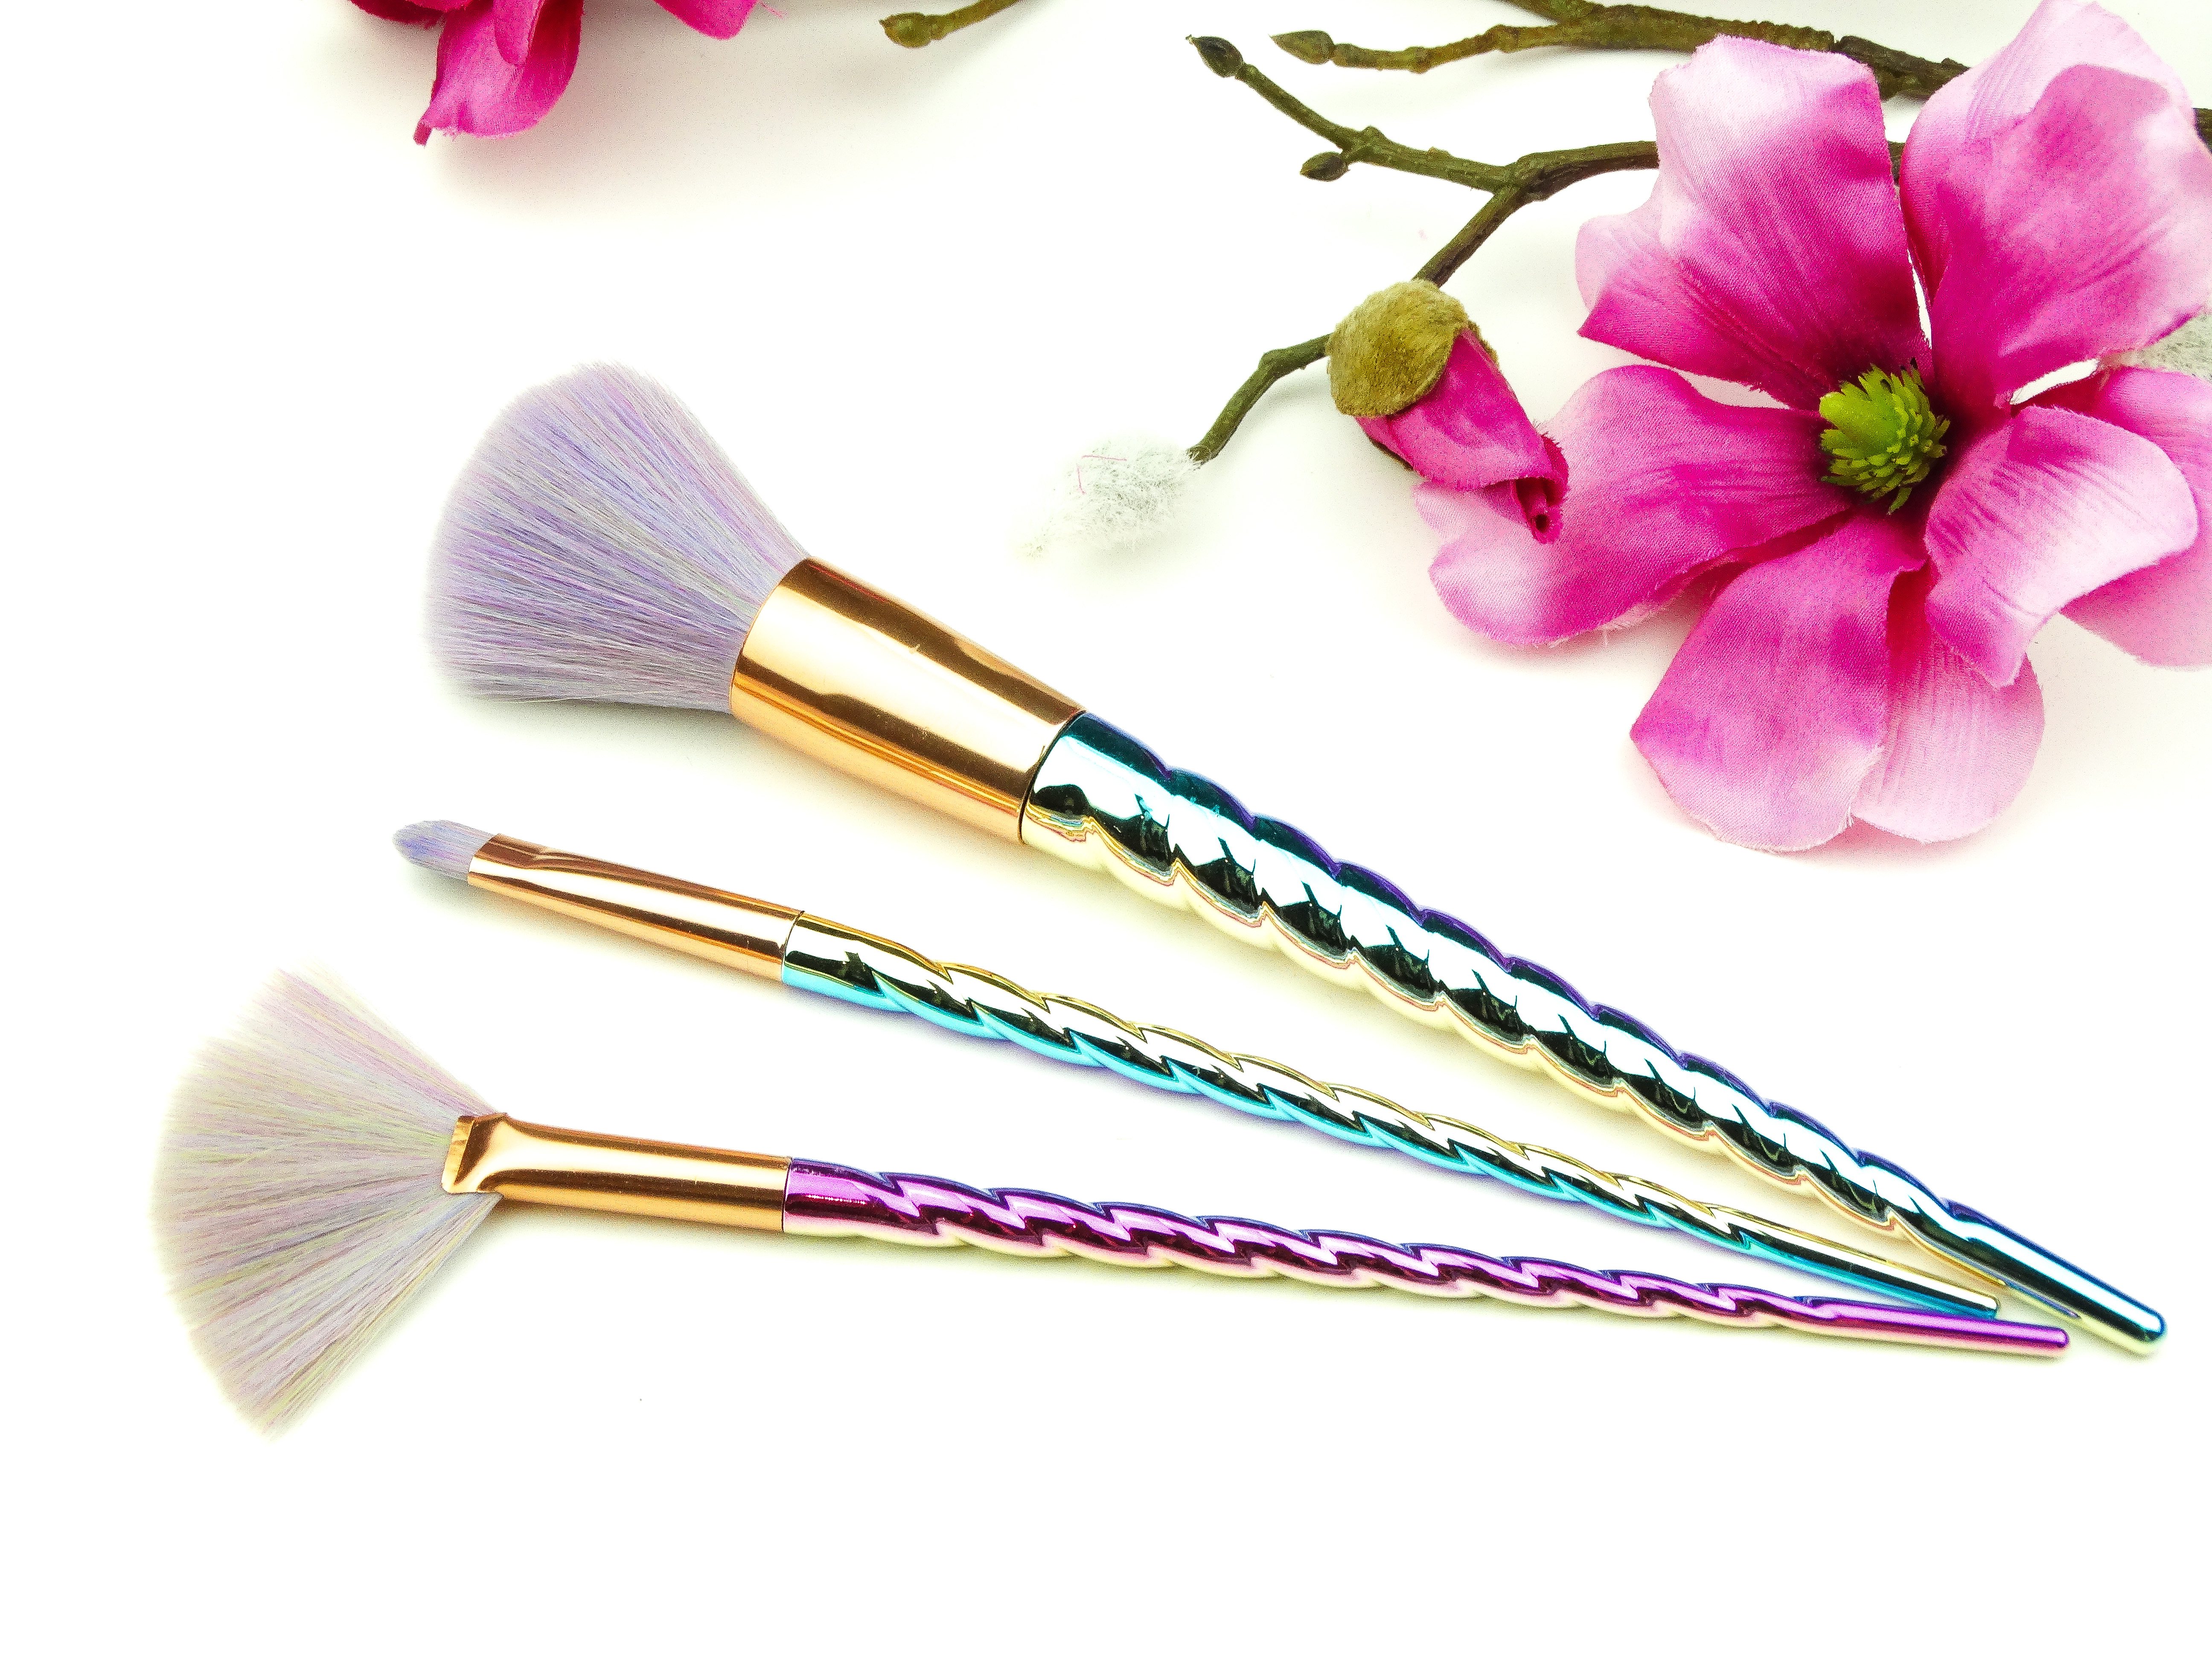 DSC09653 edited - ACTION UNICORN BRUSHES